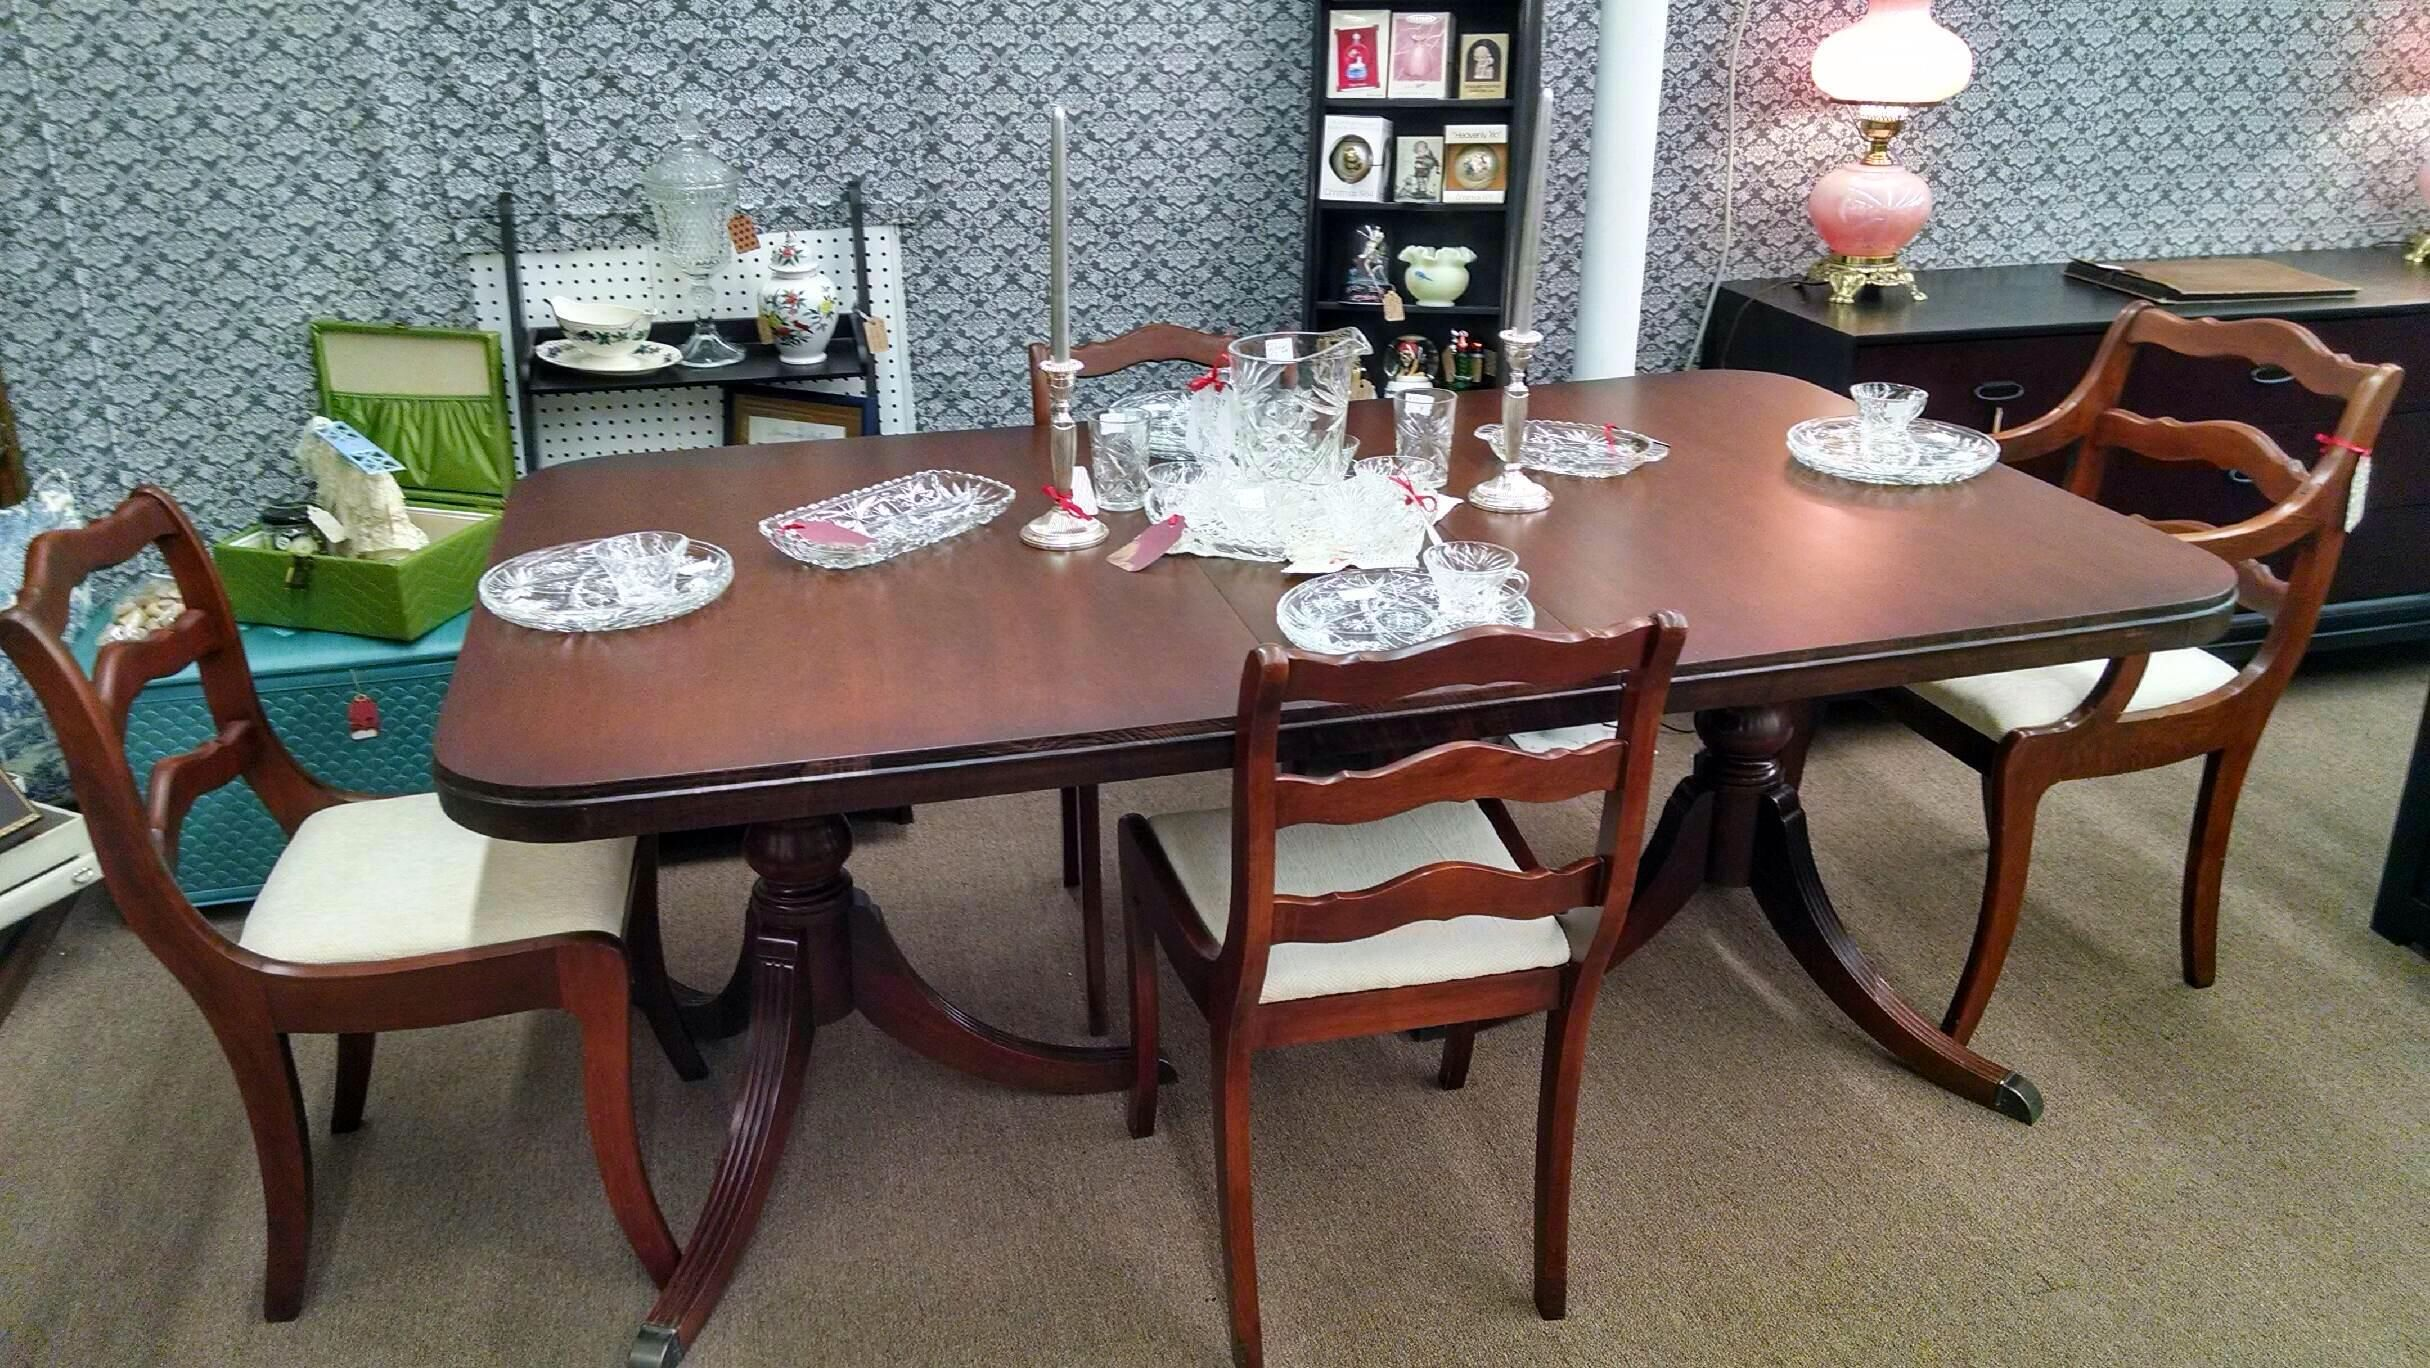 1955 Drexel Duncan Phyfe Table And 4 Chairs Just Arrived In Our